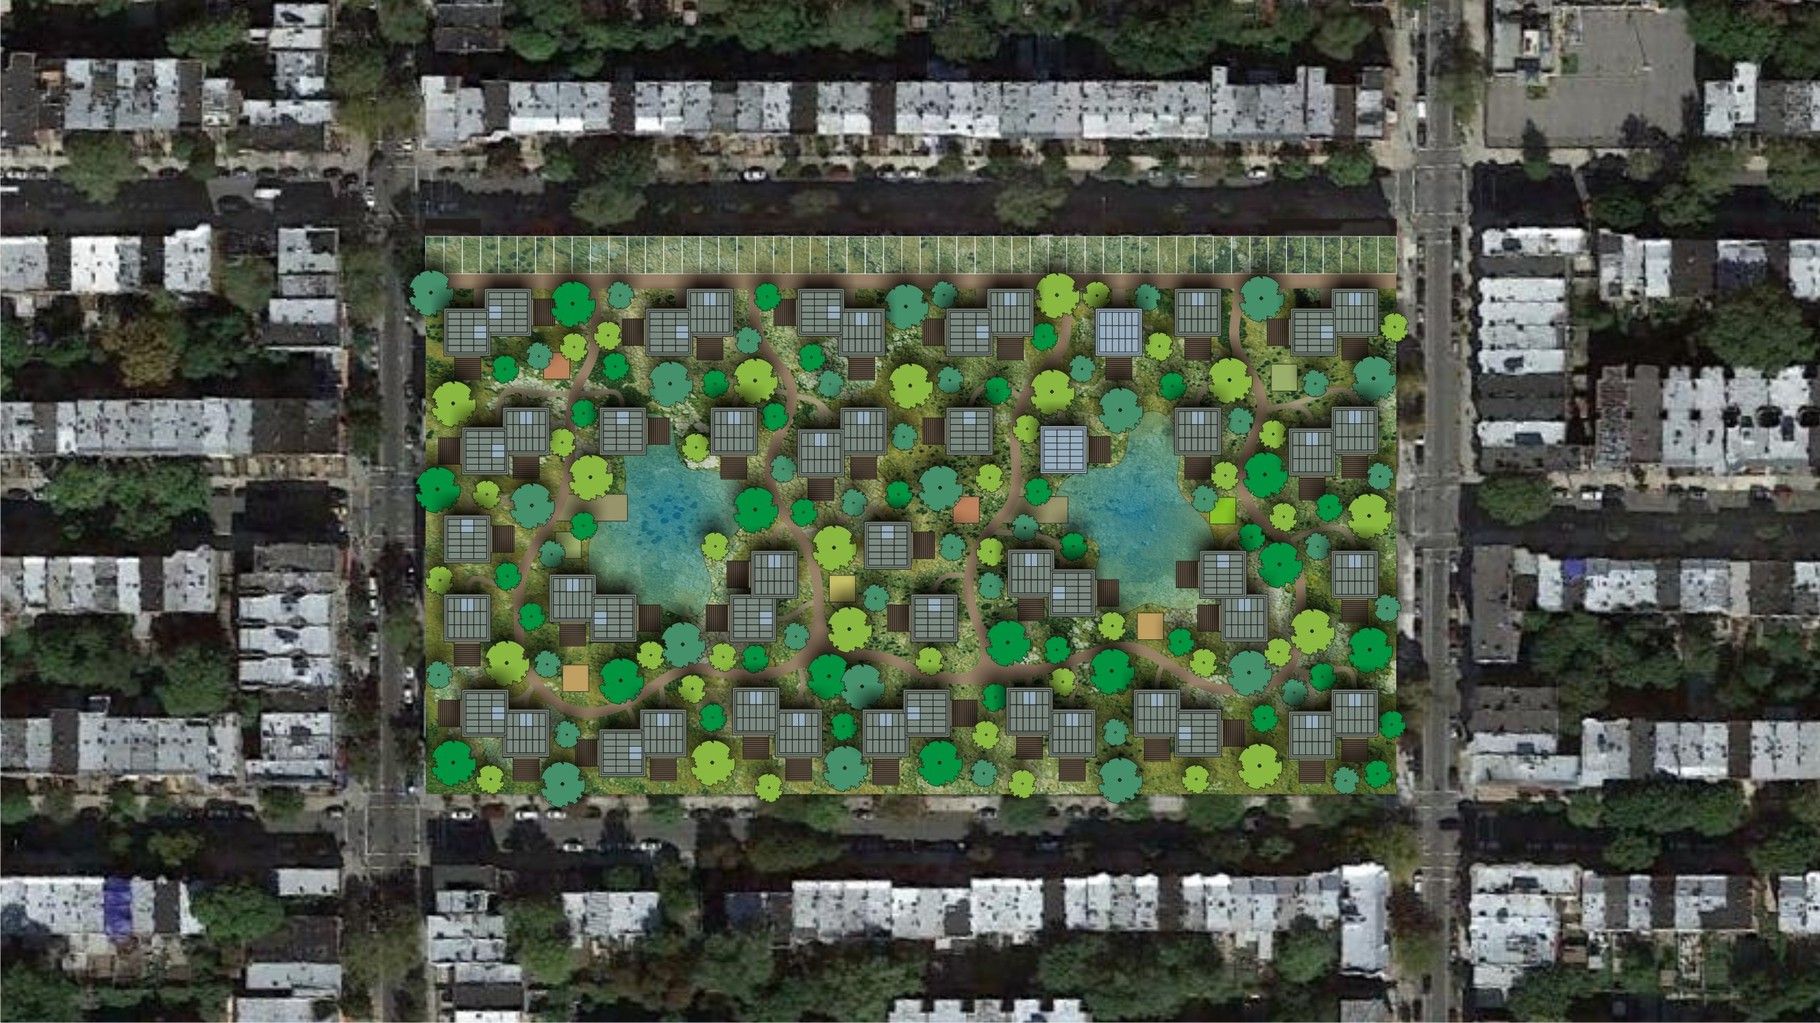 Visual OAS1S™: A desirable green community as an urban oasis in the concrete jungle.